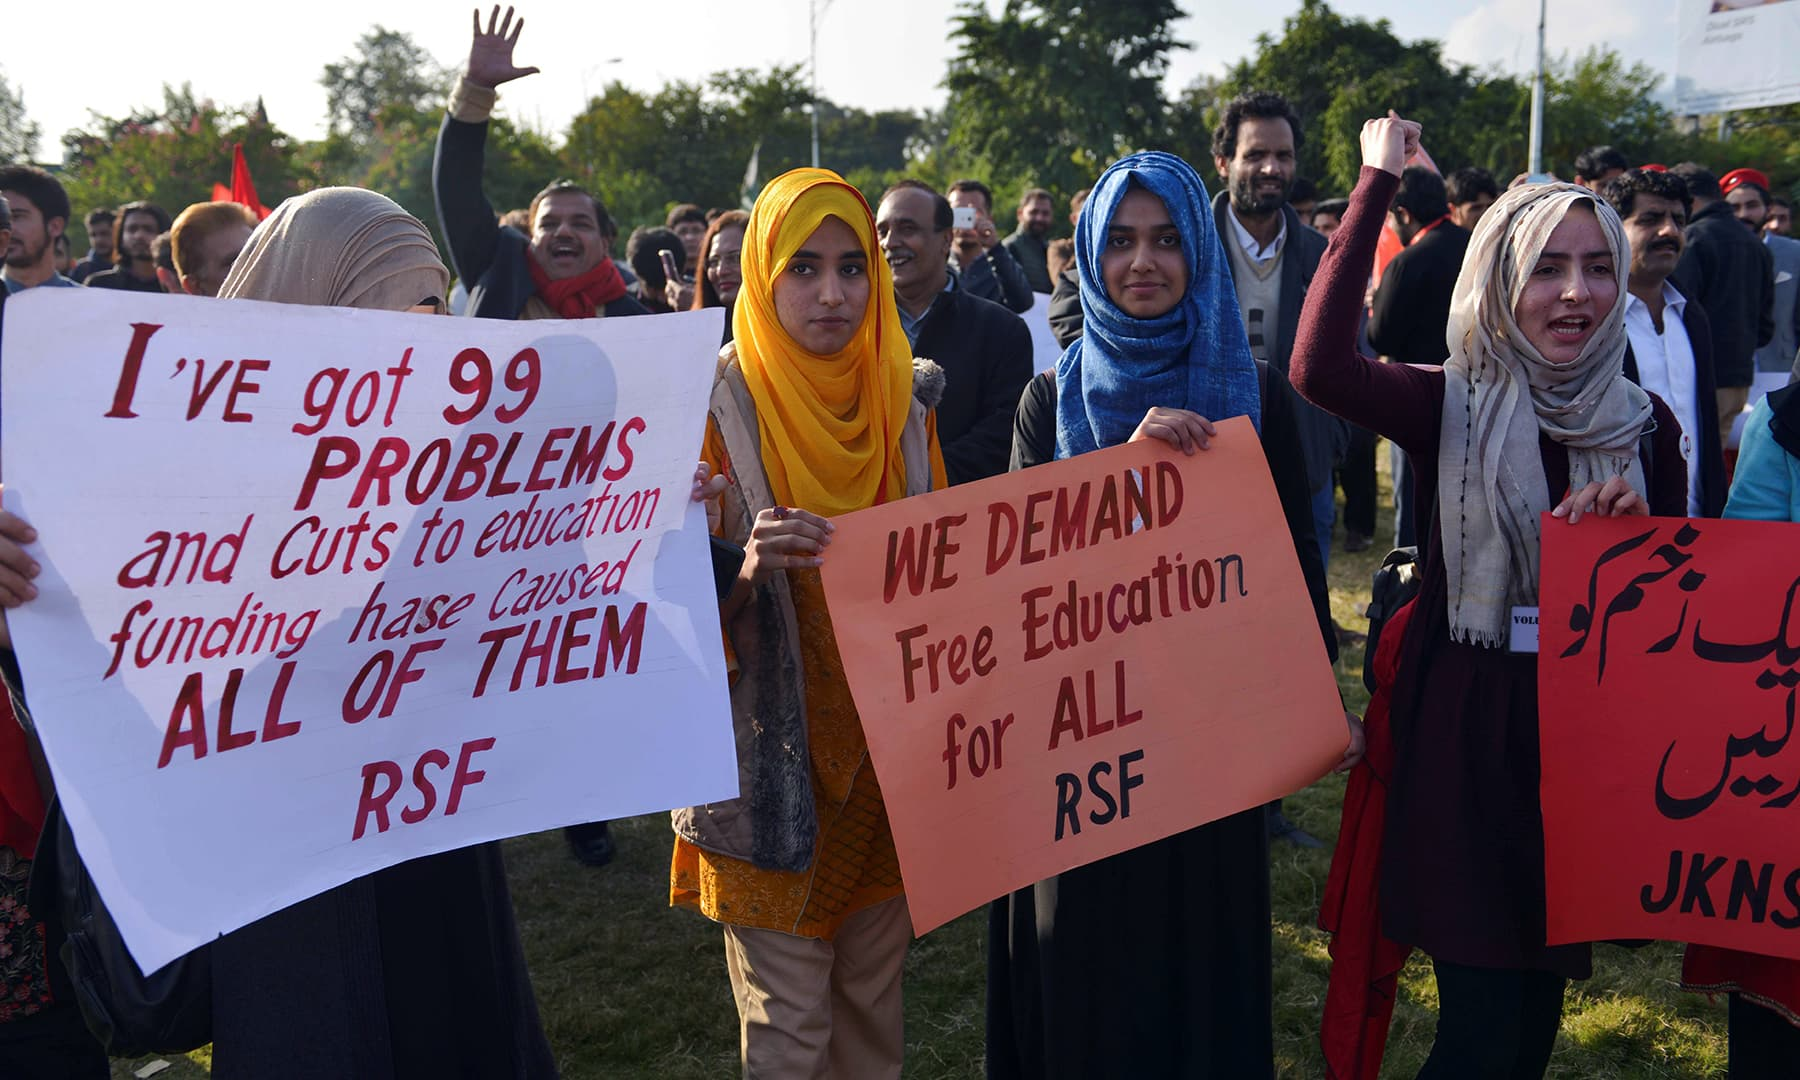 Students display their demands on placards during the protest in Islamabad on Friday. — AFP